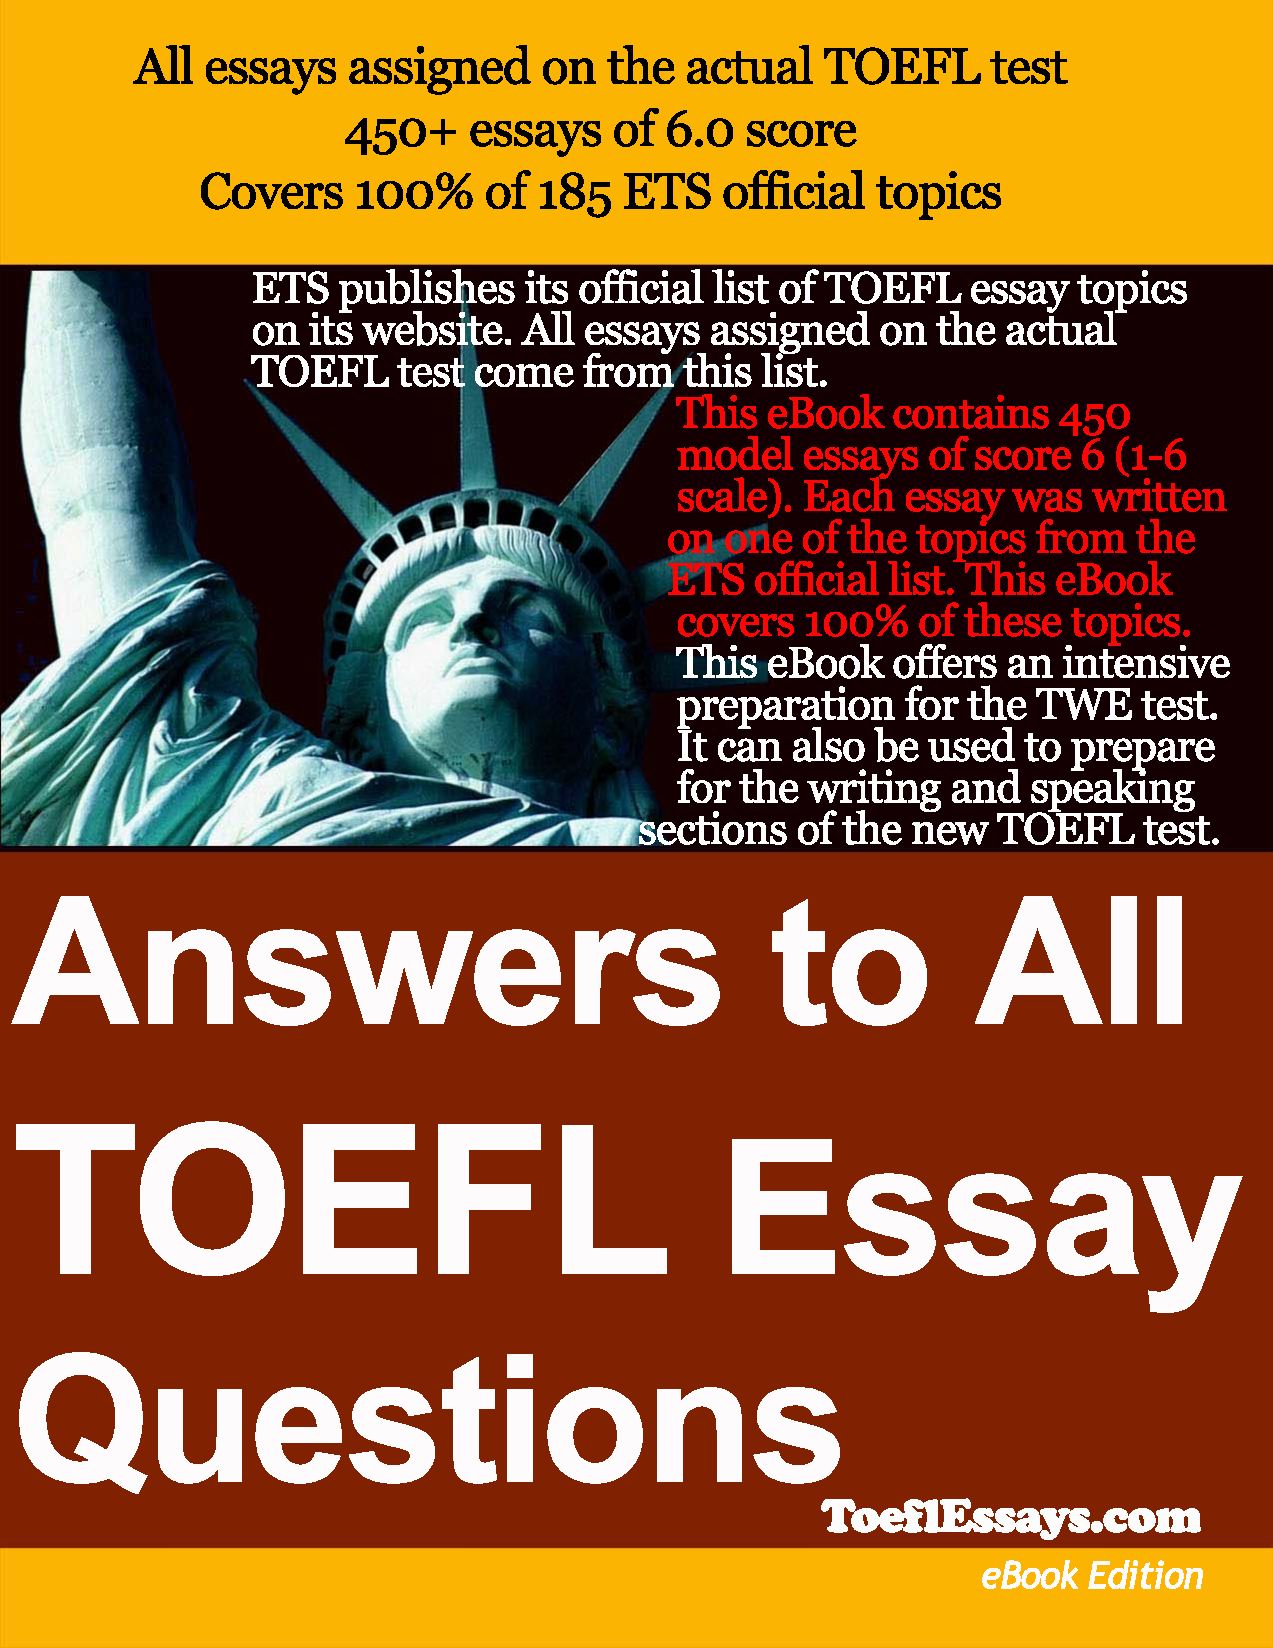 oedipus the king essay questions list of expository essay topics  all essay topics all quiet on the western front essay topics answers to all toefl essay